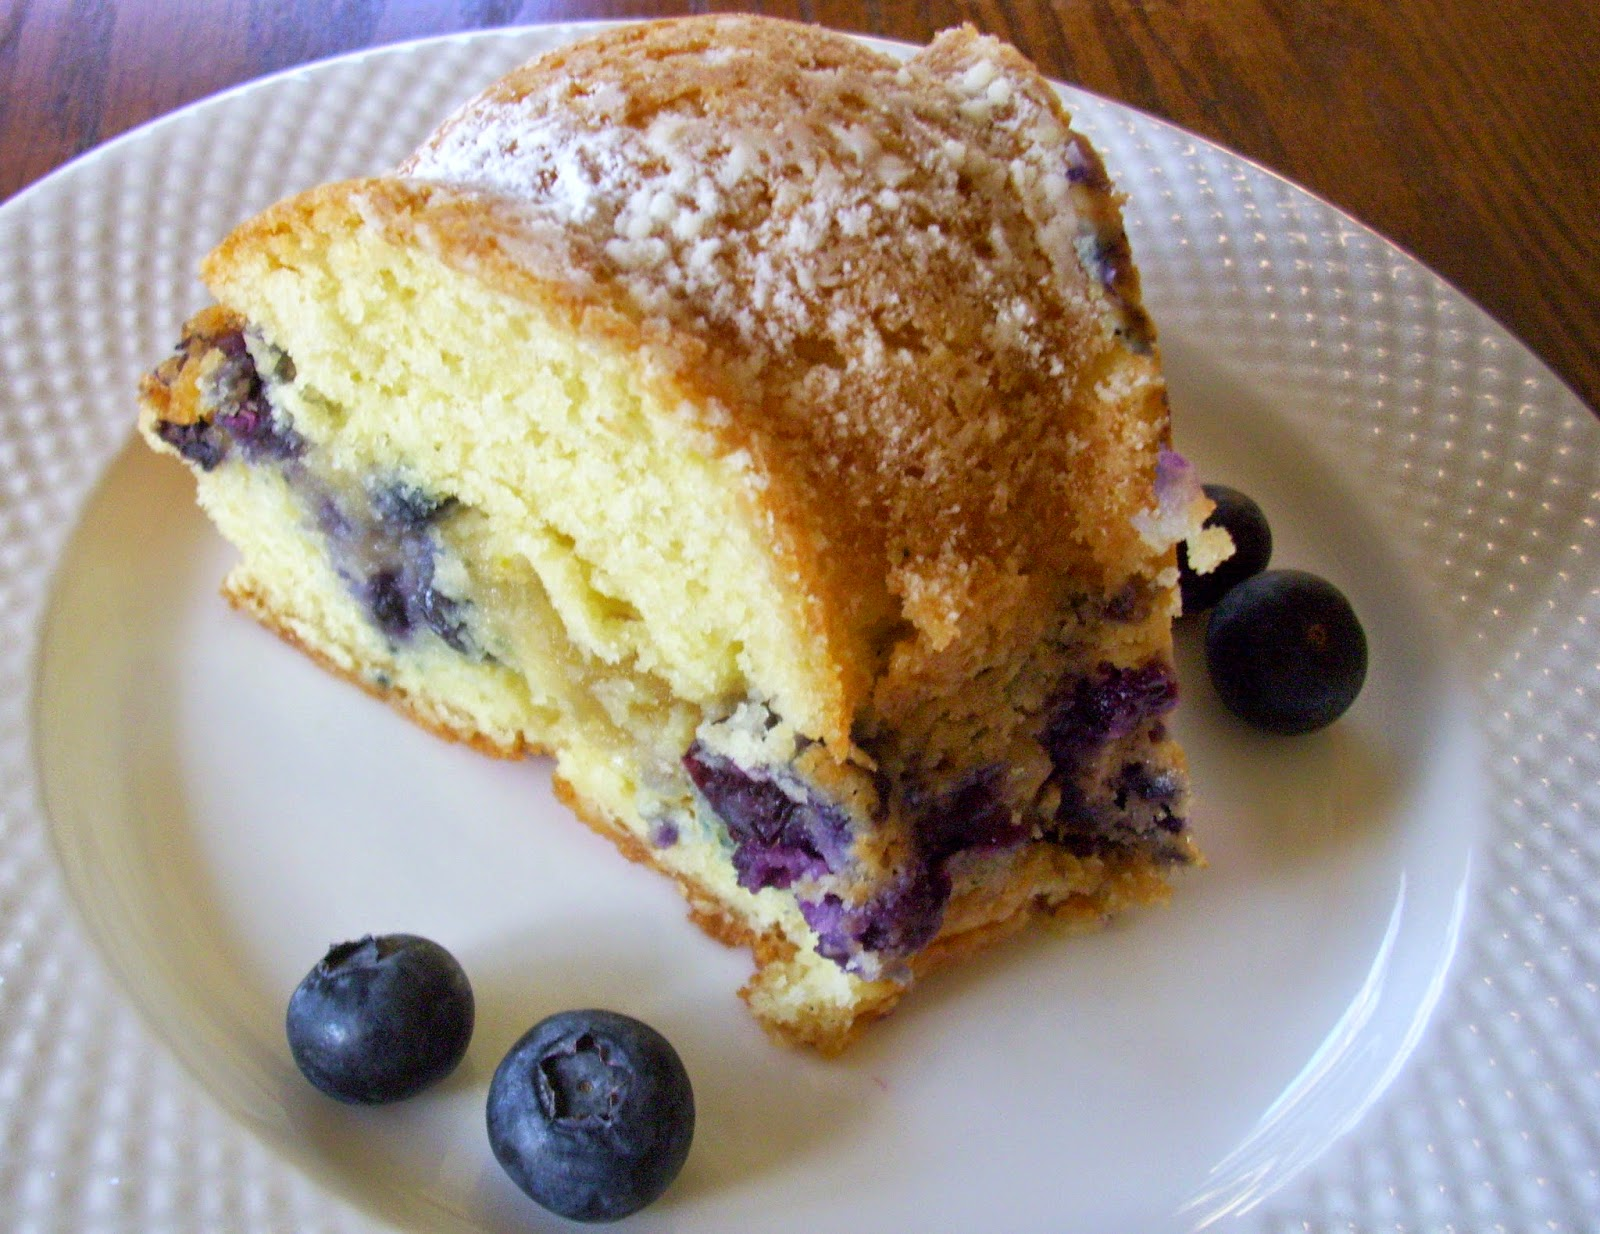 Flavors by Four: Blueberry Almond Sour Cream Coffee Cake